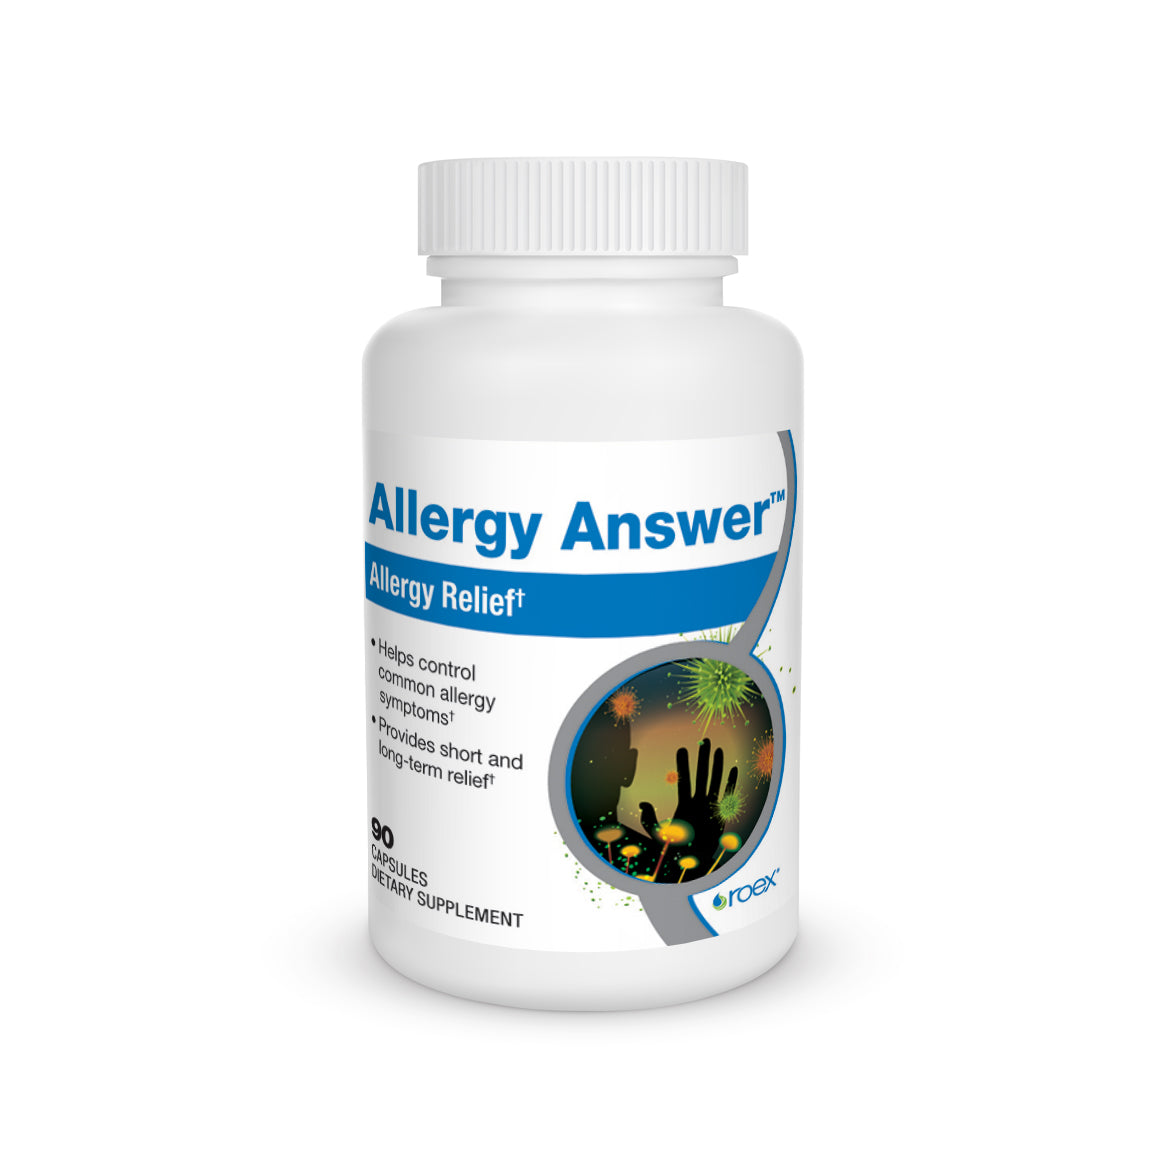 Allergy Answer